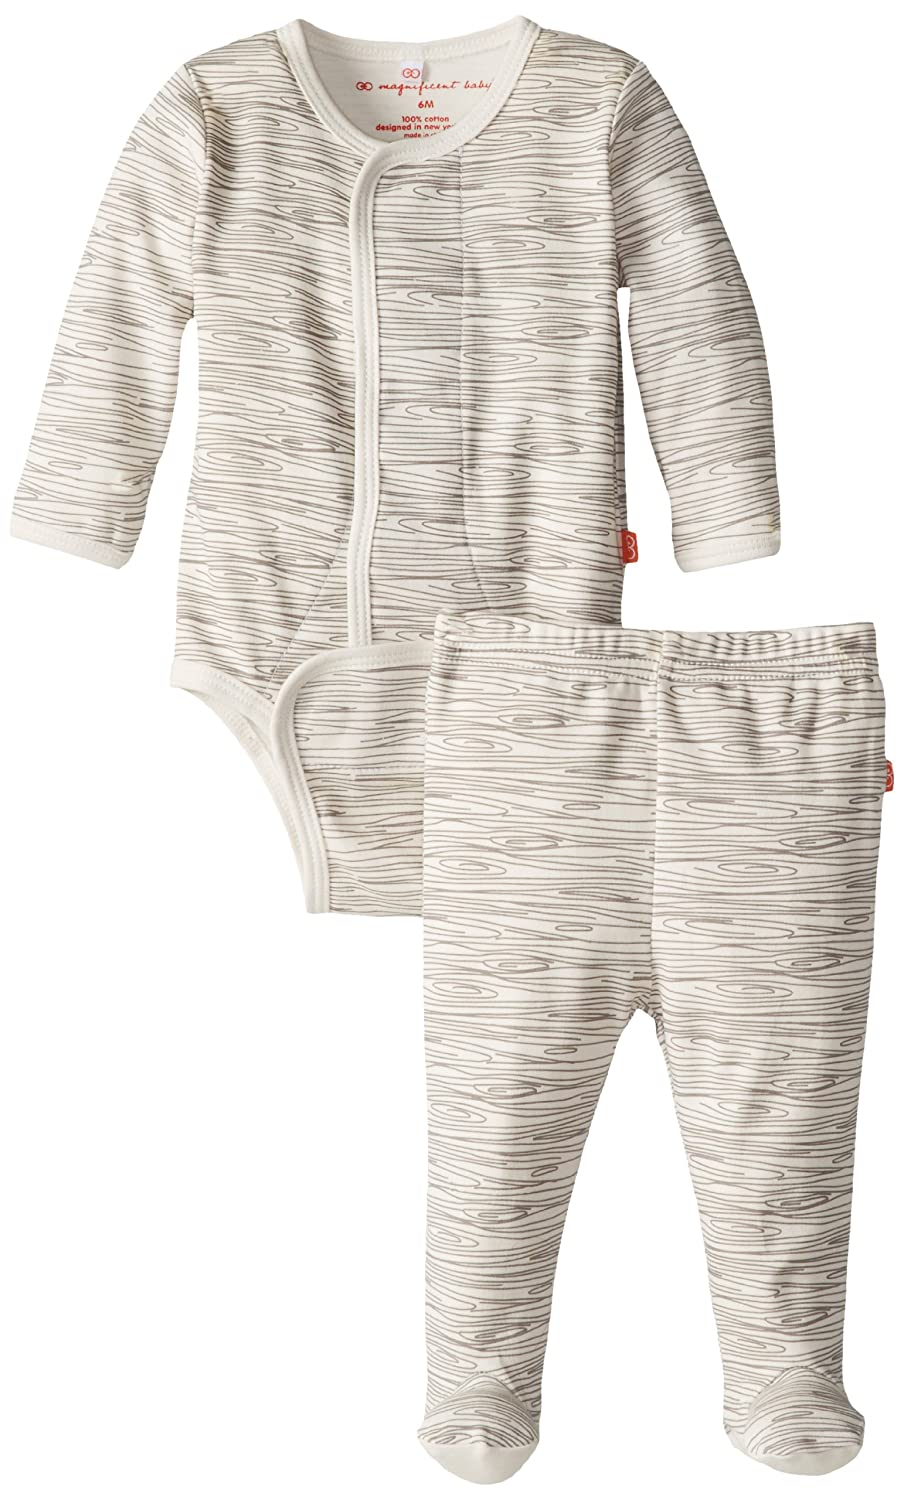 Magnificent Baby Unisex-Baby Newborn Long Sleeve Burrito Pant Set, Birch, 3 Months 1539U